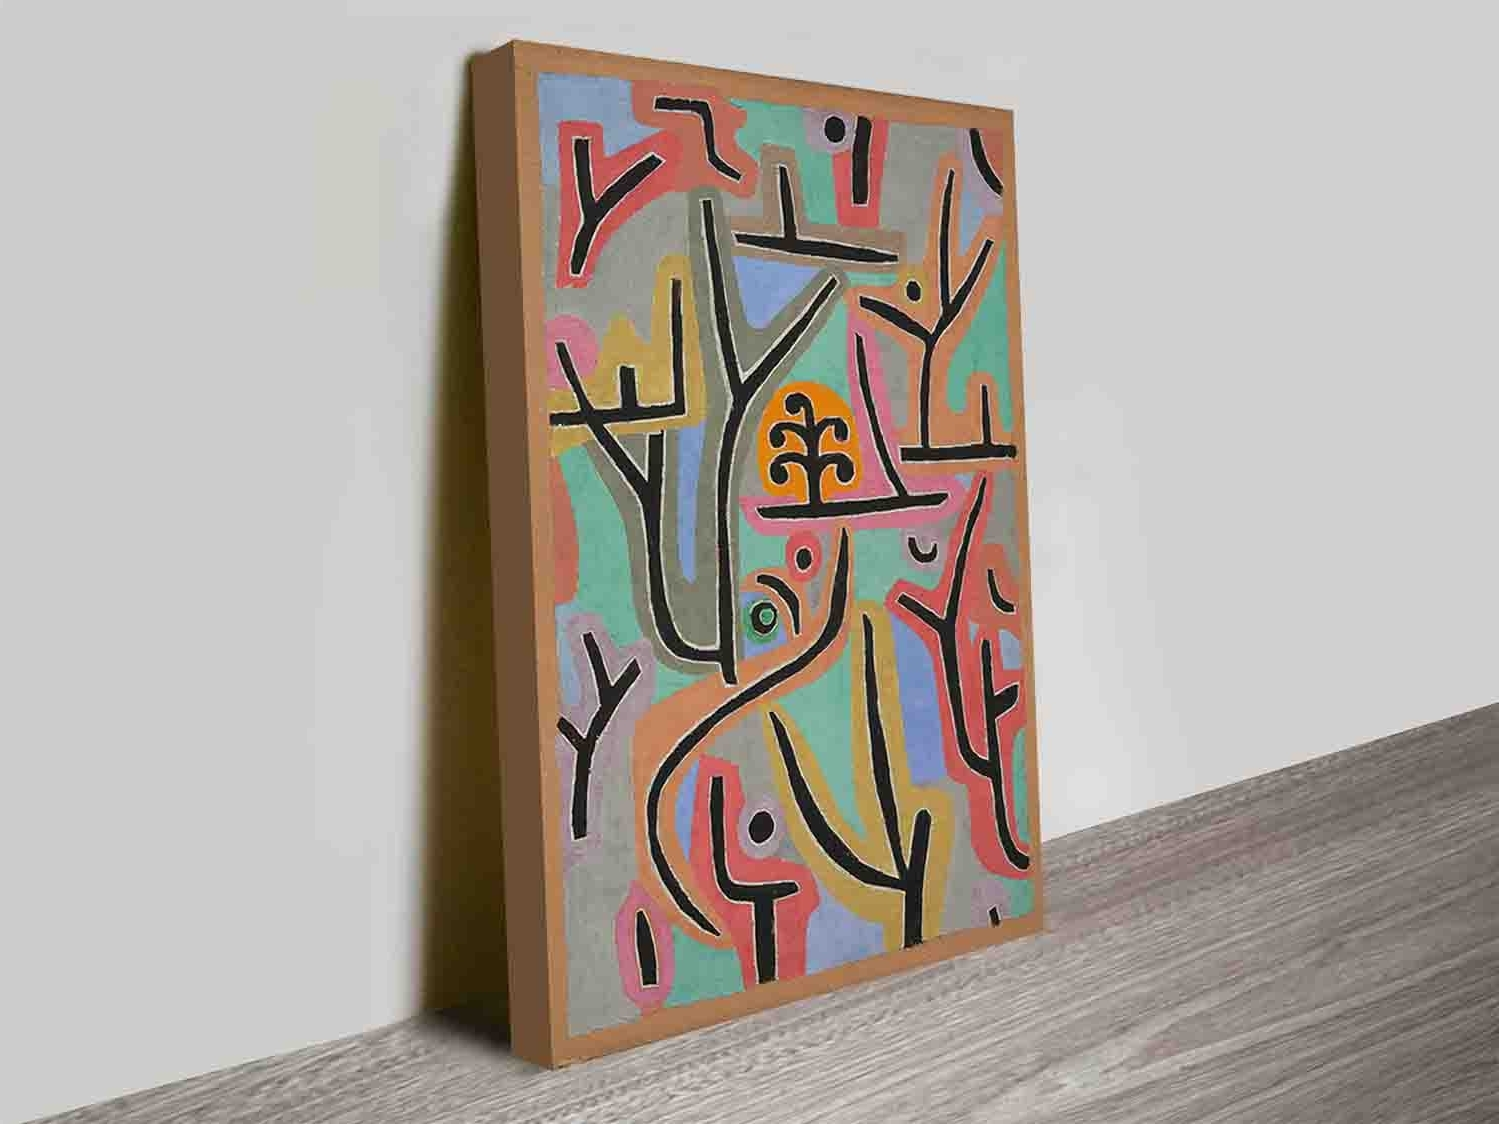 Discount Wall Art Inside Newest Park Bei Lupaul Klee Modern Artist Discount Wall Art Canvas Prints (View 17 of 20)